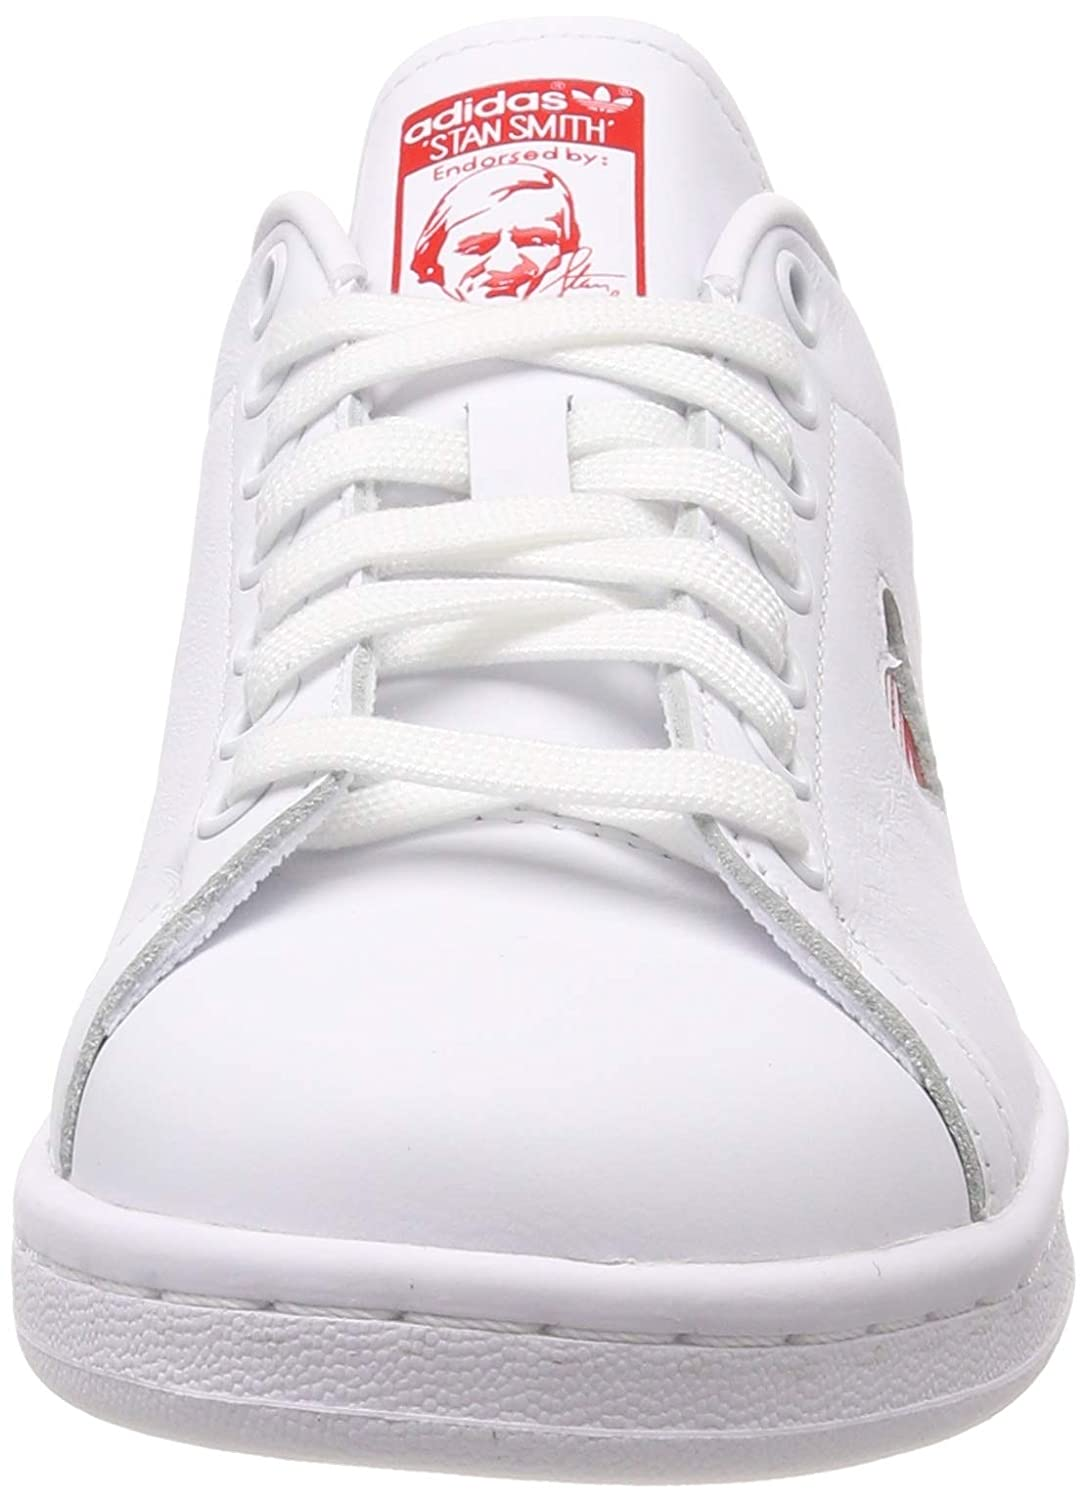 adidas Stan Smith W G27893, Sneakers Basses Femme